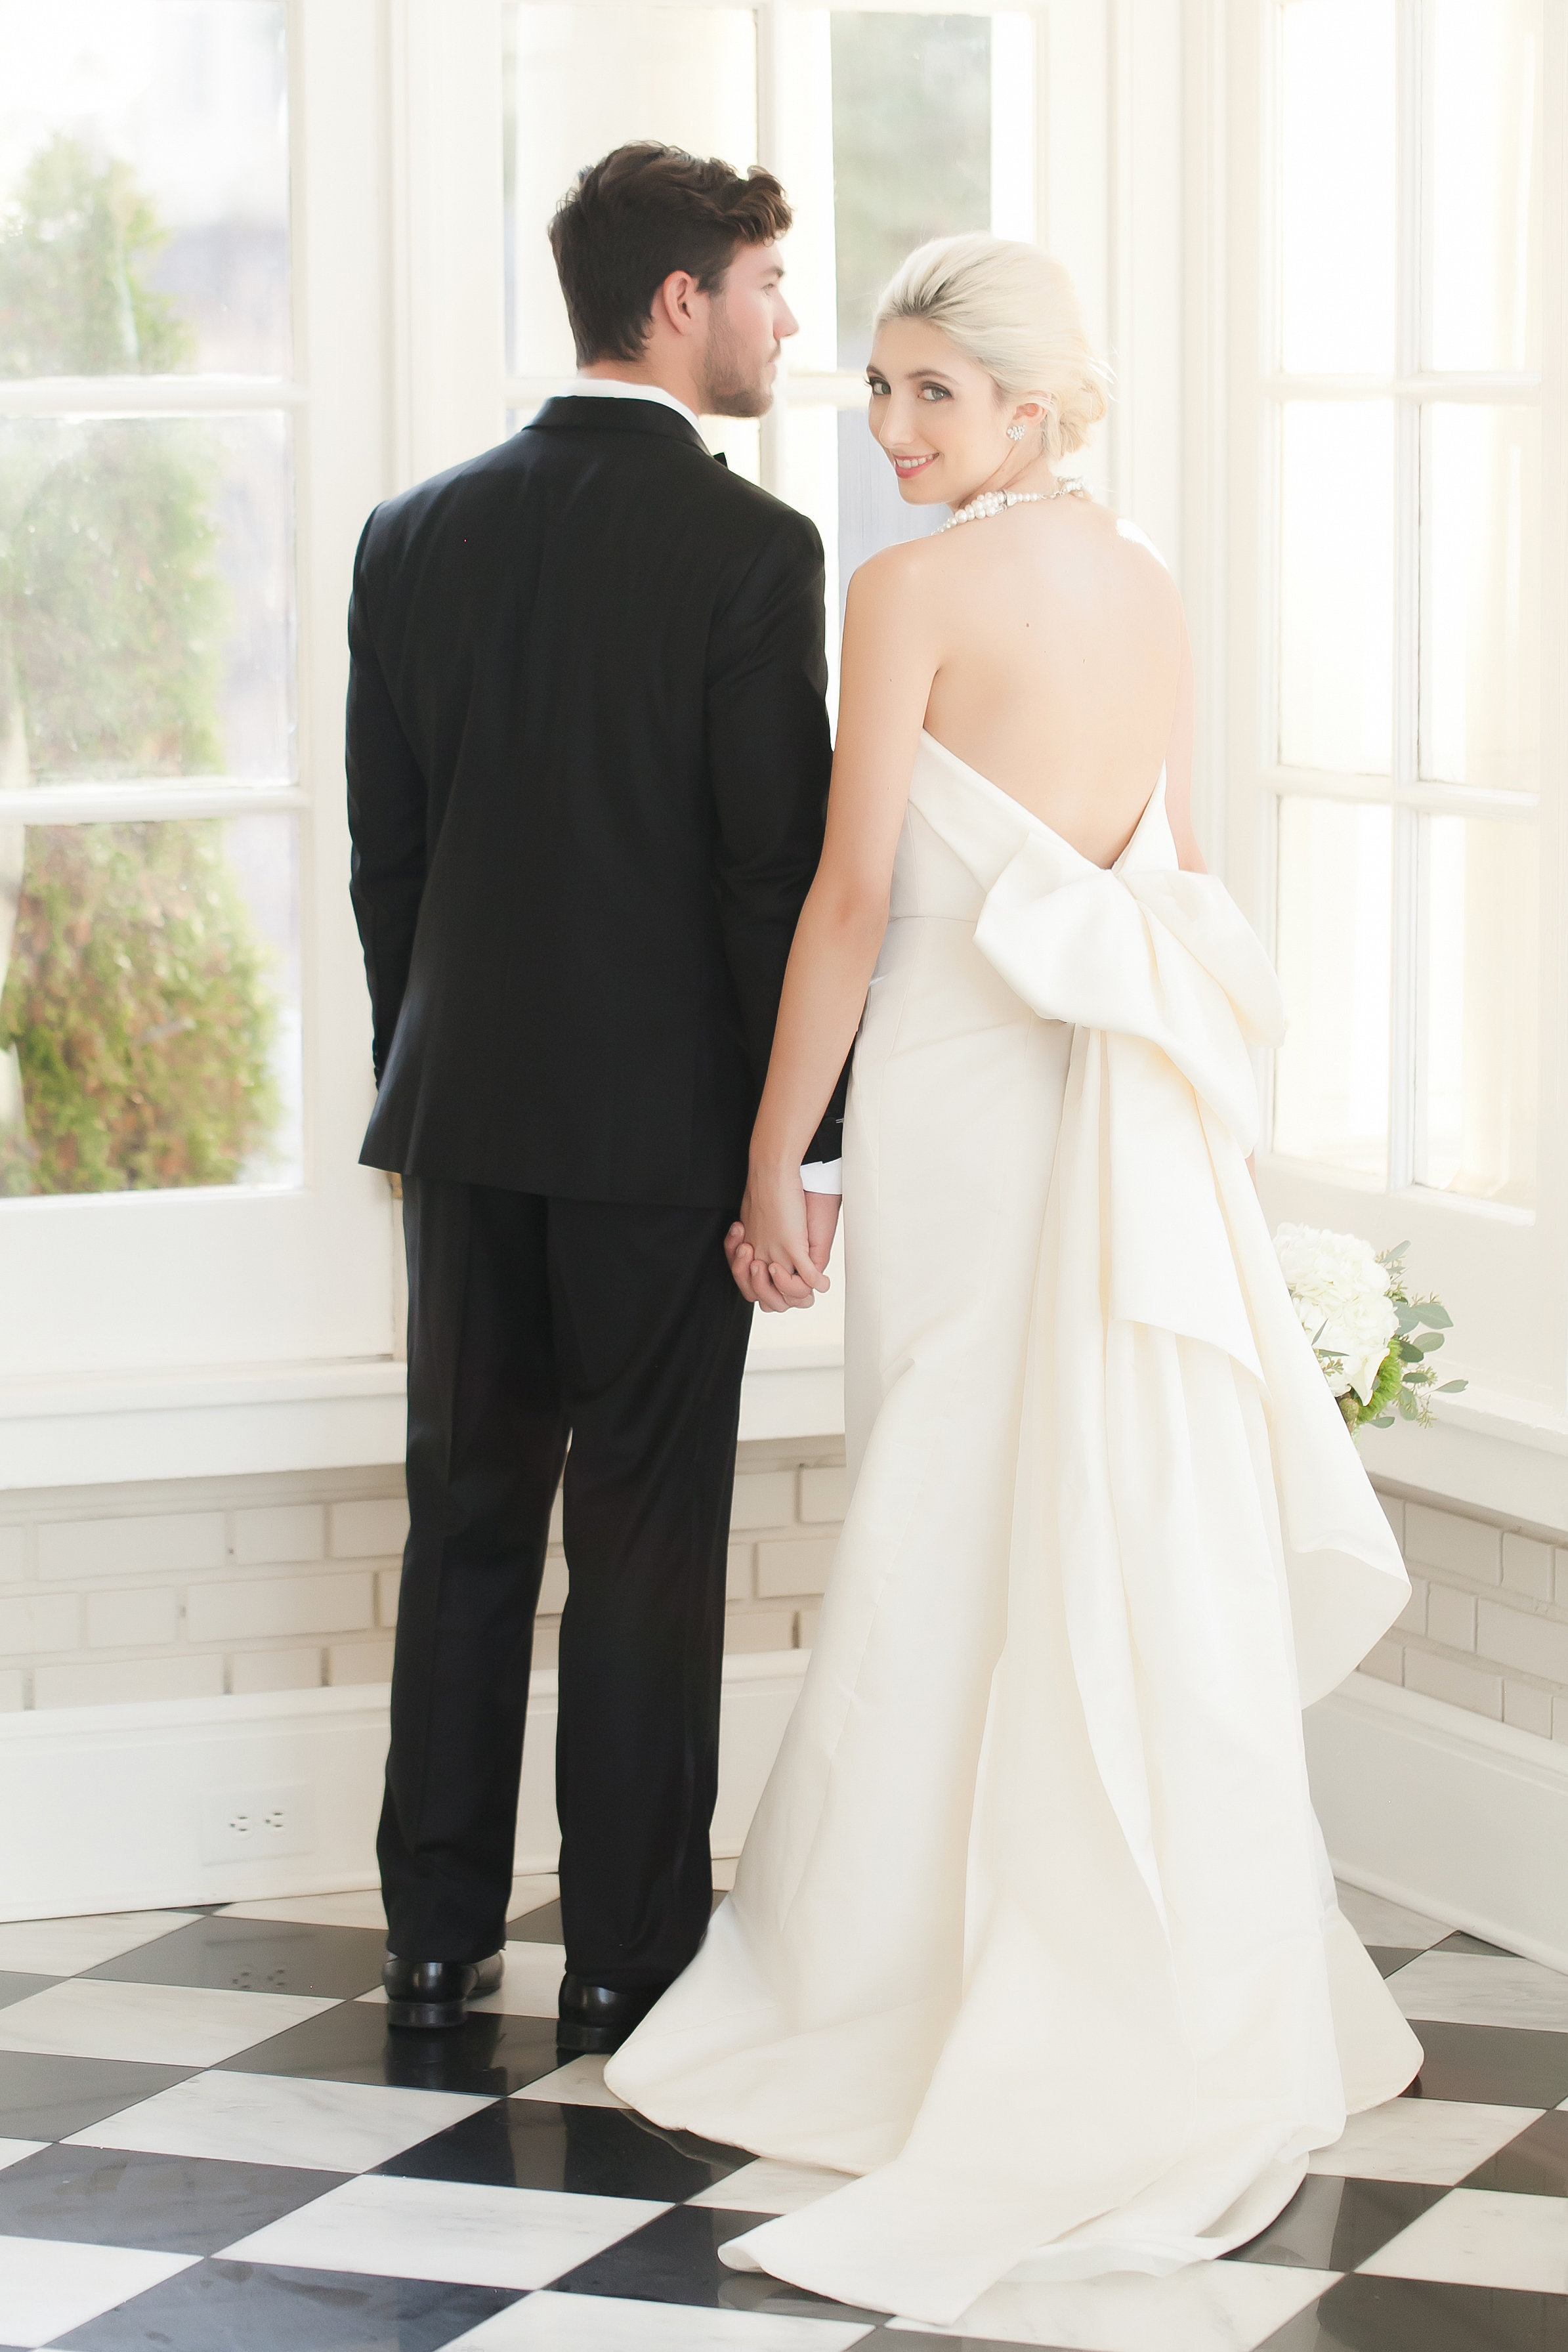 Bride and groom pose for pictured captured by Casey Hendrickson Photography during their wedding at the Separk Mansion